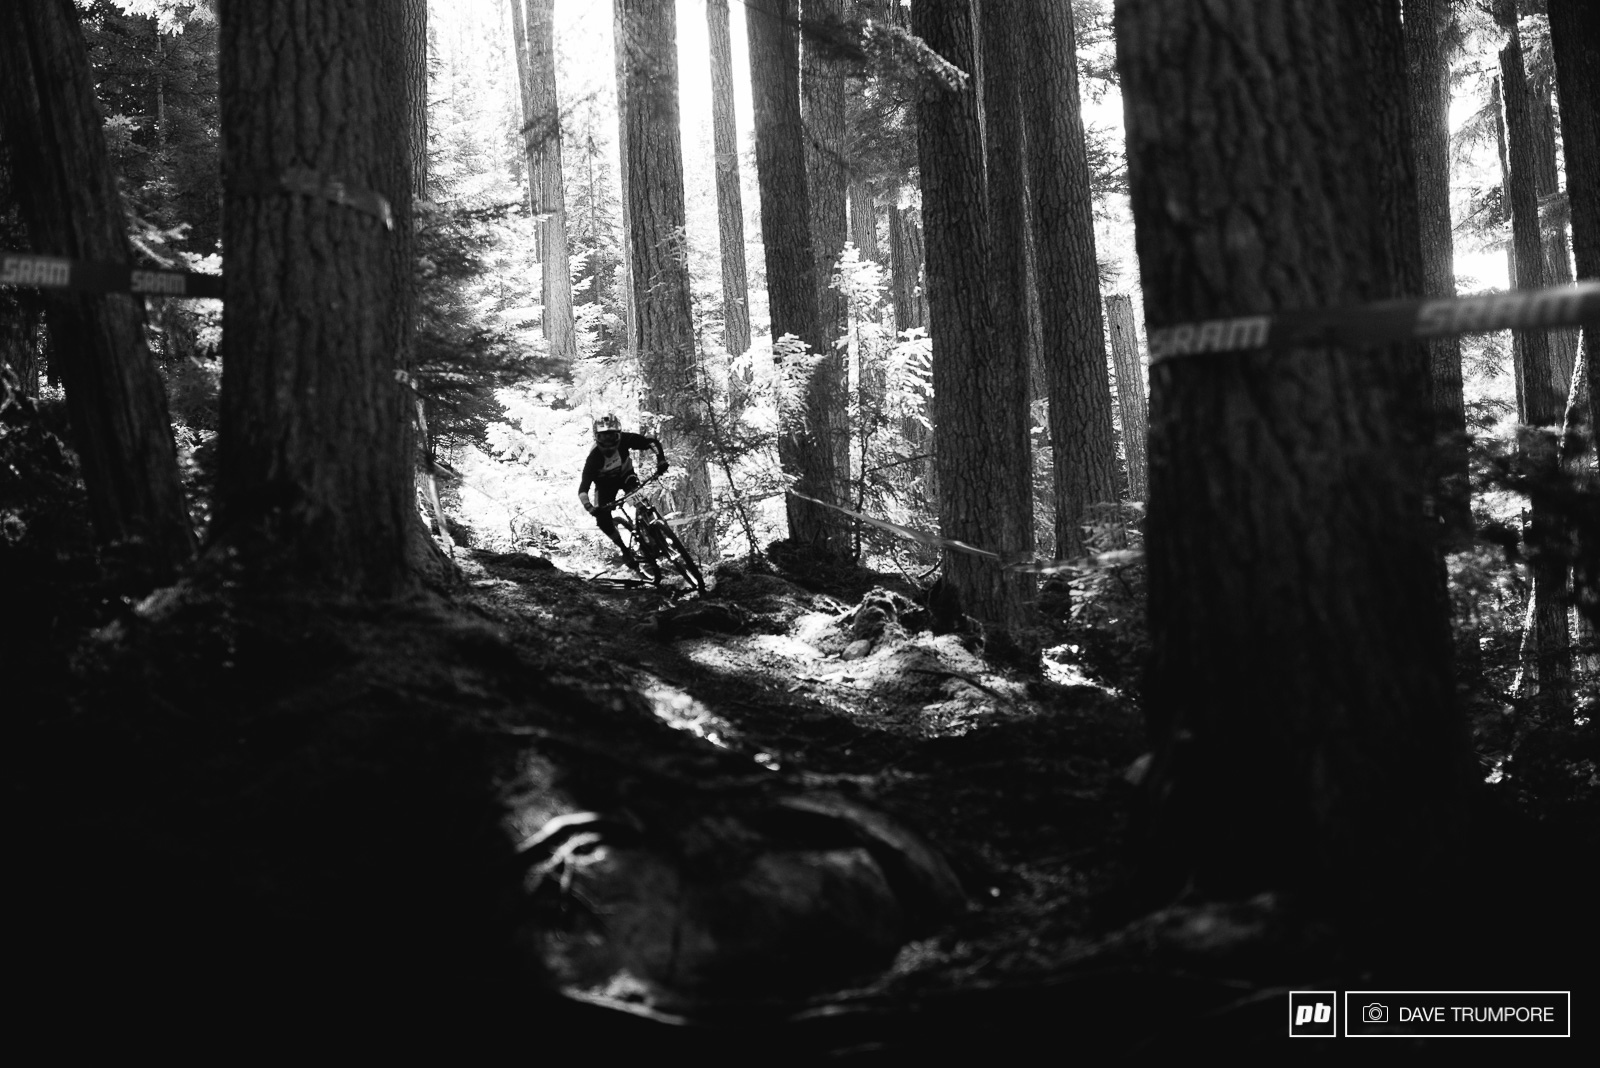 With the sun blazing overhead and not a cloud in the sky it s not just the high temps riders will have to watch out for. The incredibly spotty light in the woods is also making it very hard to see the holes stumps and roots hidden just below the loamy surface of things.